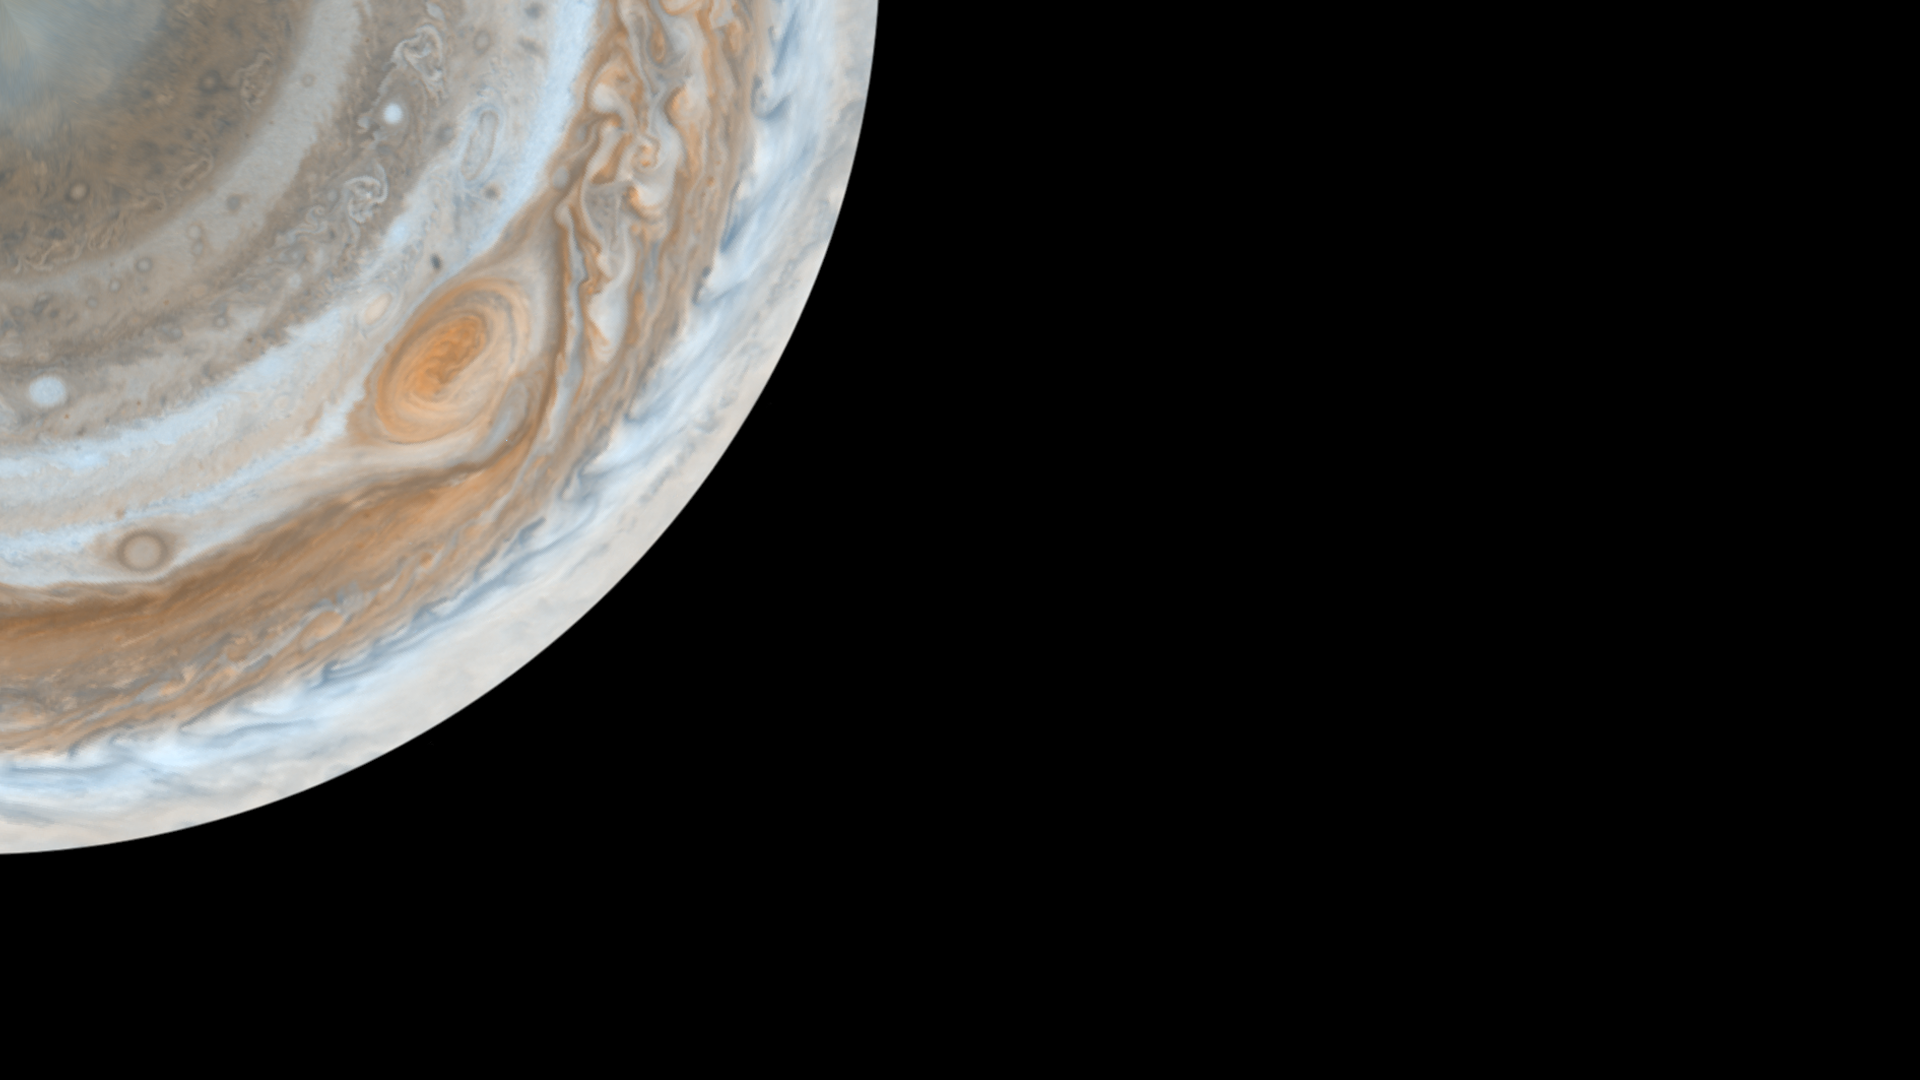 space solar system planets jupiter south pole HD Wallpaper of Space 1808